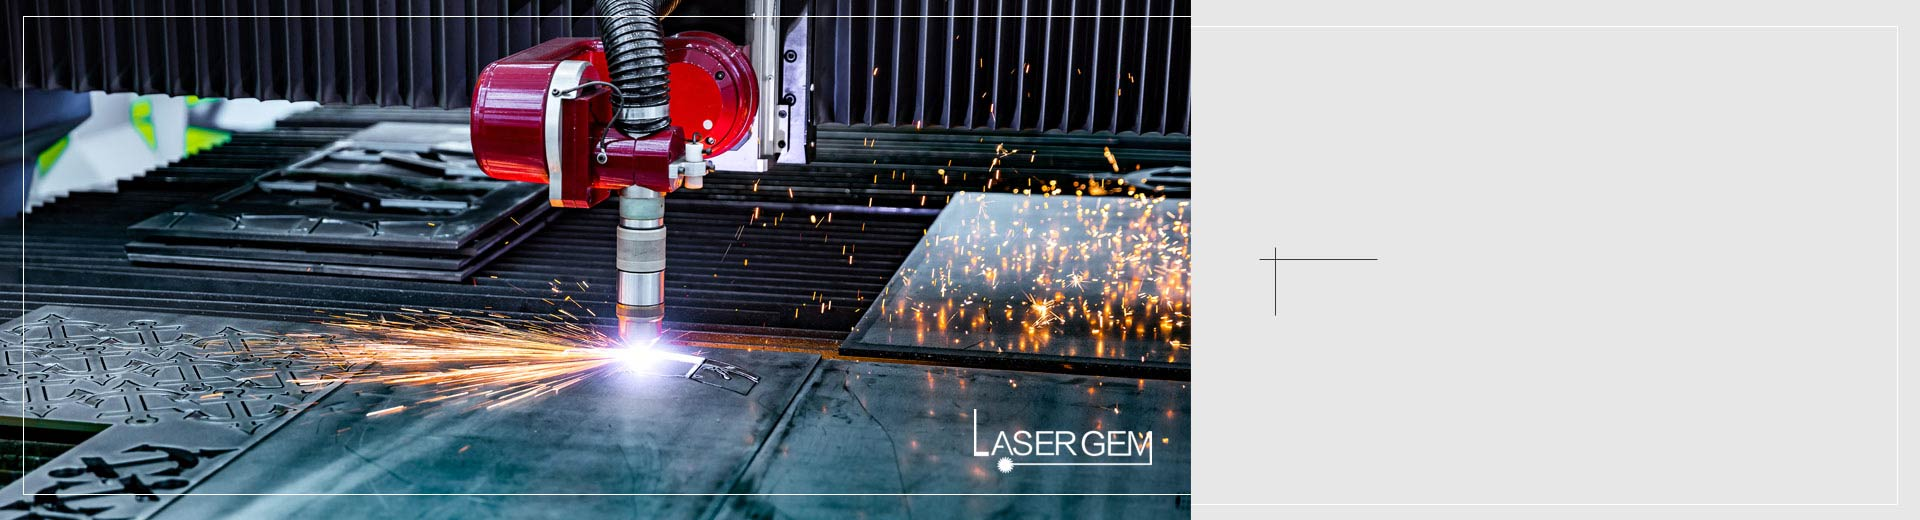 GEM laser machines manufacturer